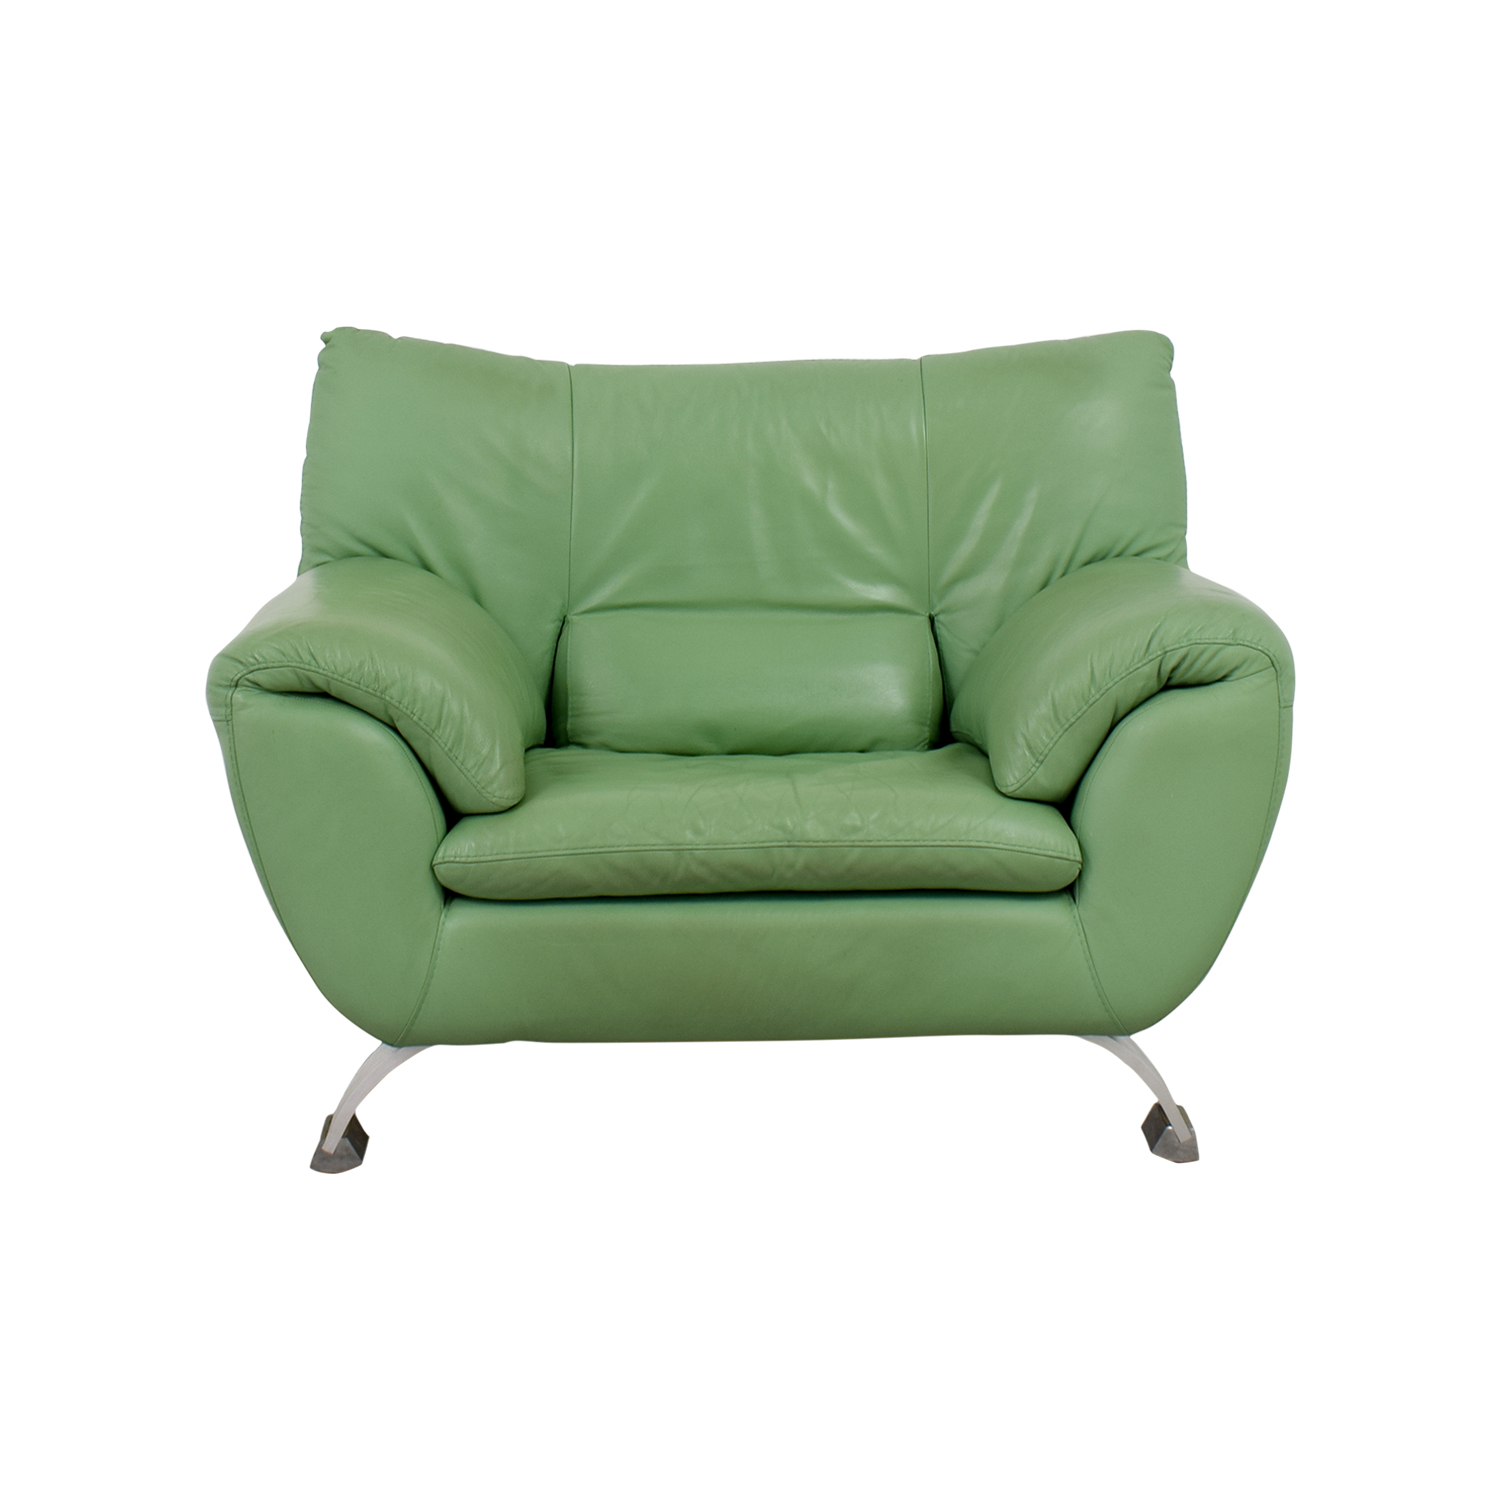 54% OFF Nicoletti Nicoletti Green Accent Chair Chairs